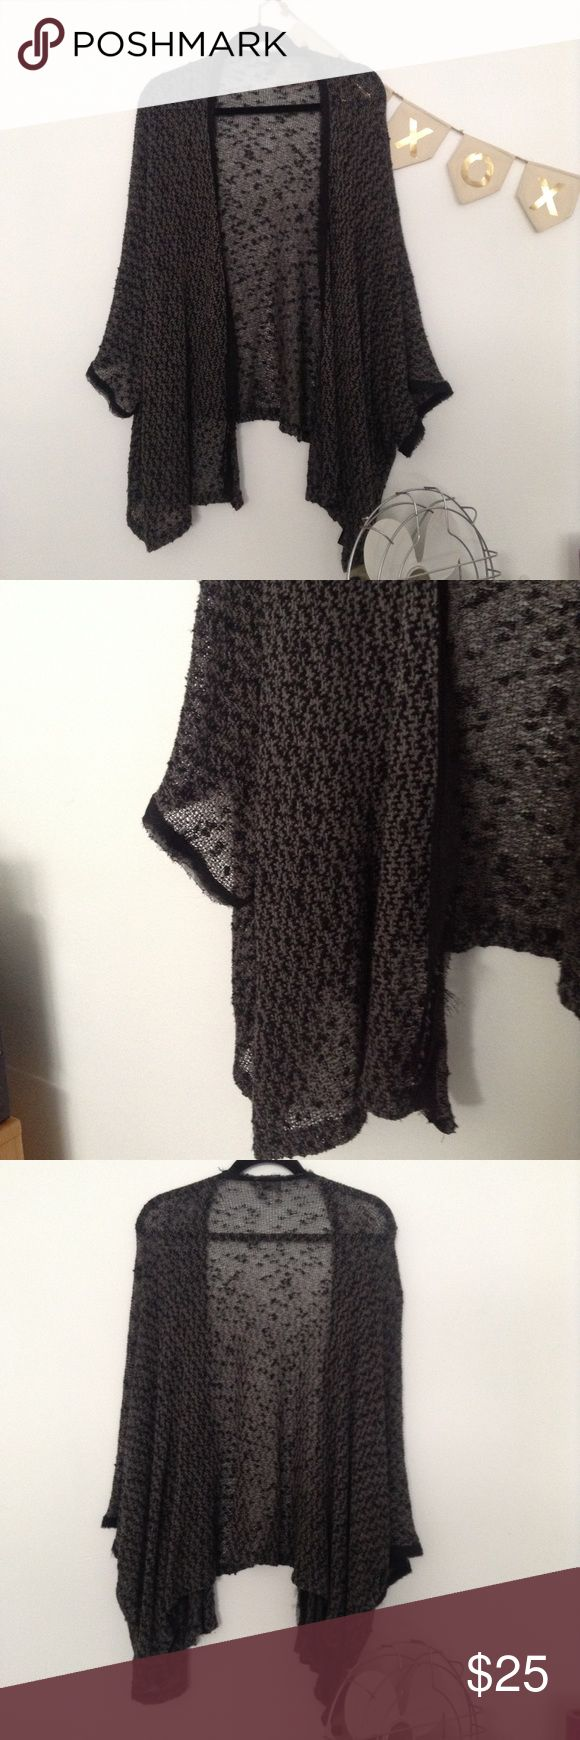 UO Sparkle and Fade Black & Grey Shrug UO Sparkle and Fade Black & Grey Shrug. Size XS. Amazing condition. No snags, holes, stains or smells. 68% poly, 28% rayon, 4% spandex. Let me know if you have any questions. Thank you! Urban Outfitters Sweaters Shrugs & Ponchos